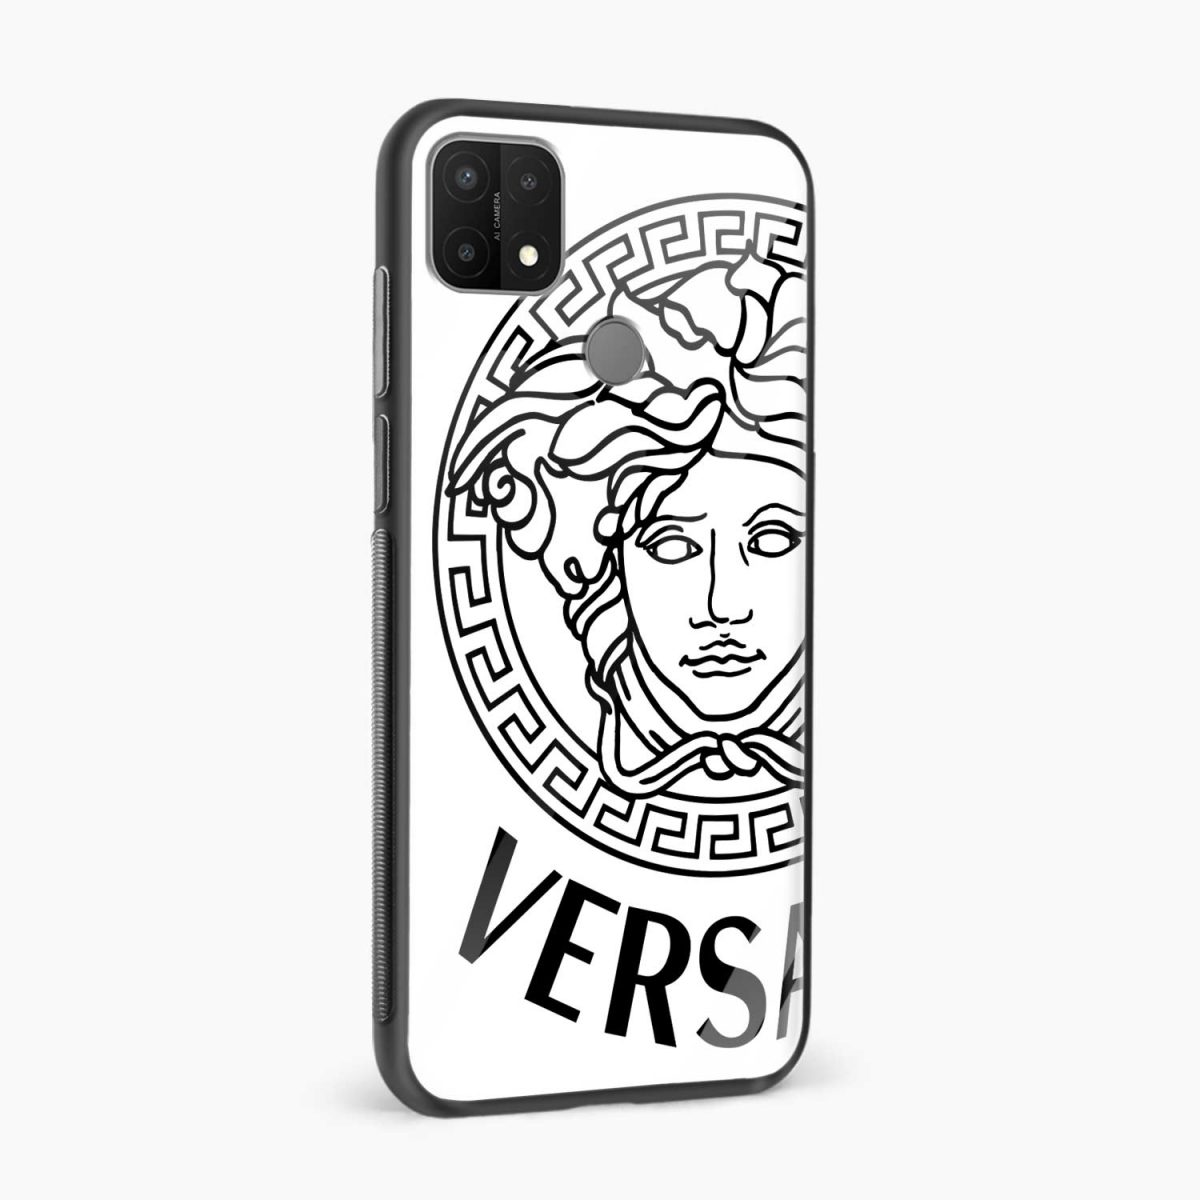 versace black white side view oppo a15 back cover